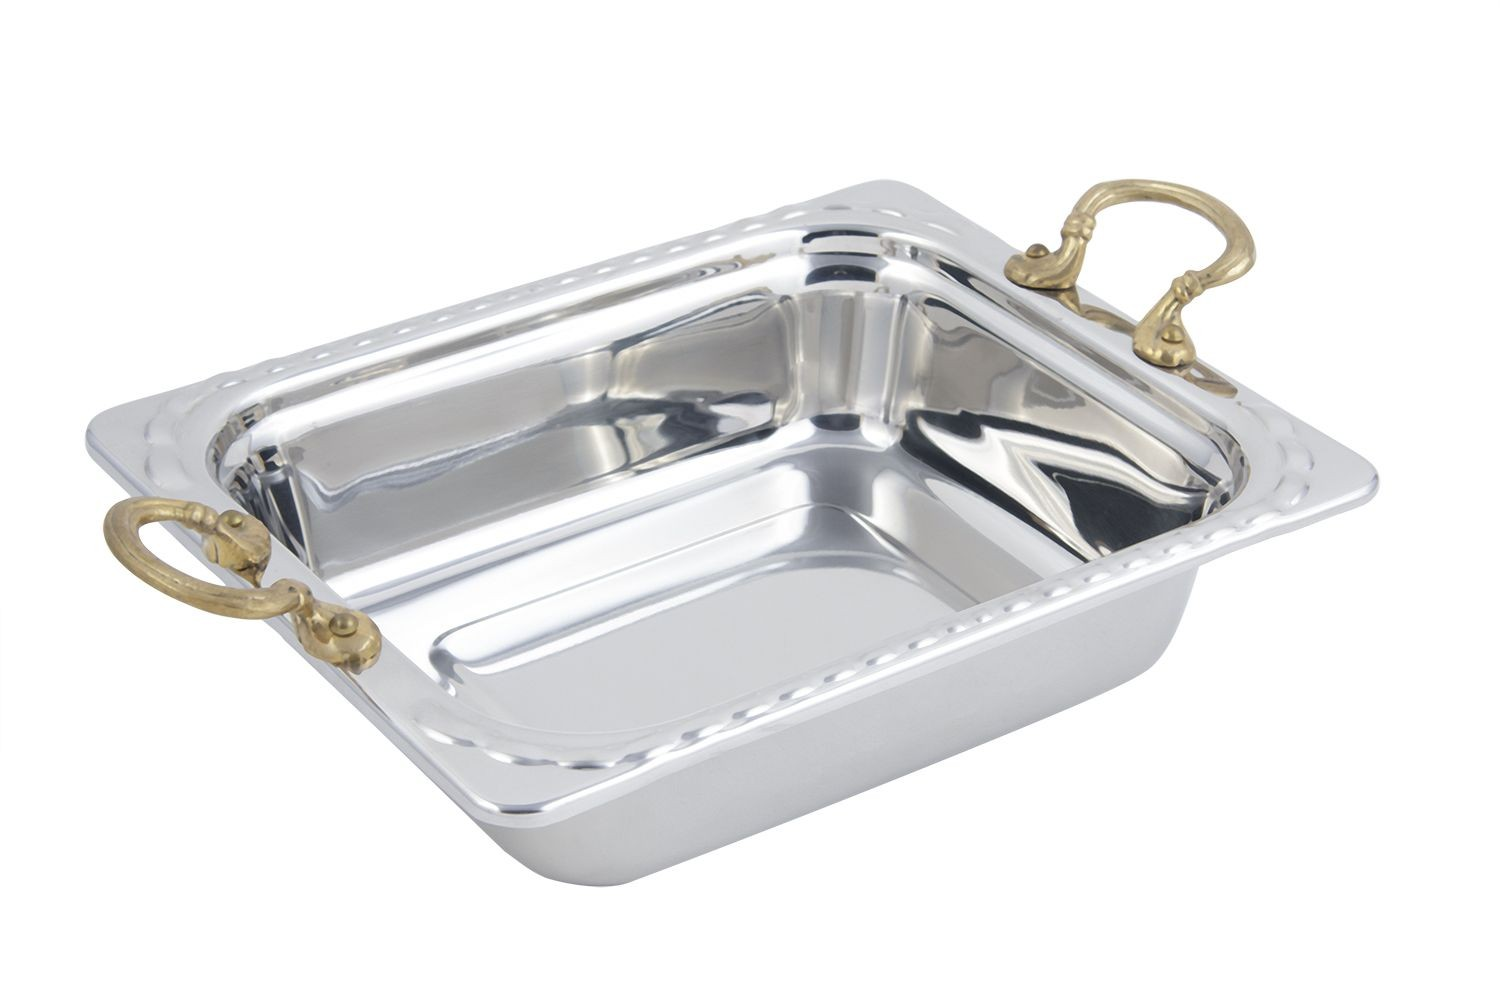 Bon Chef 5609HR Arches Design Rectangular Half-Size Food Pan with Round Brass Handles, 3 Qt.